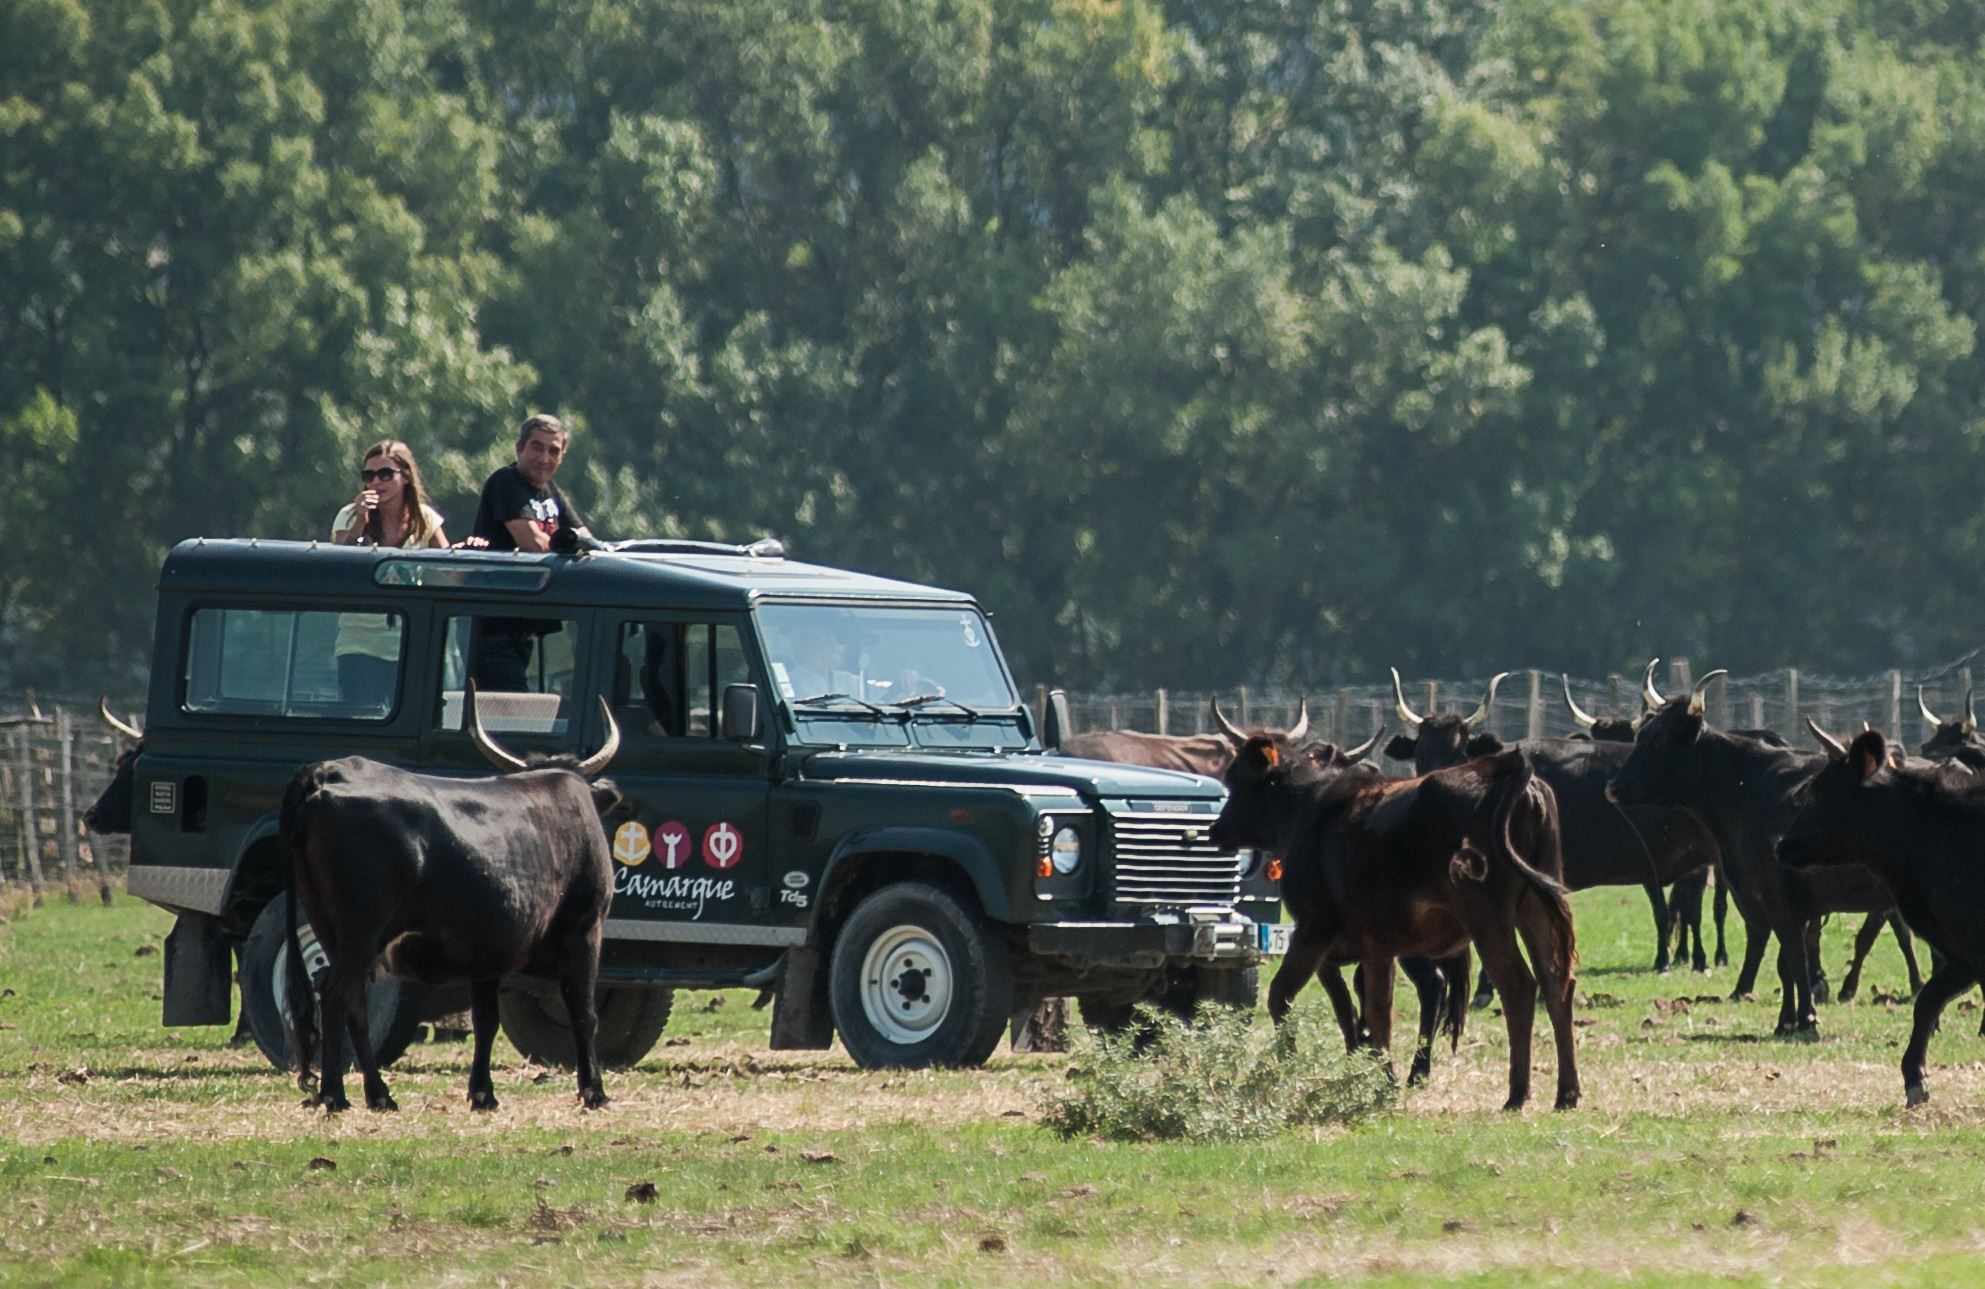 Safari in 4x4 - La Camargue Autrement